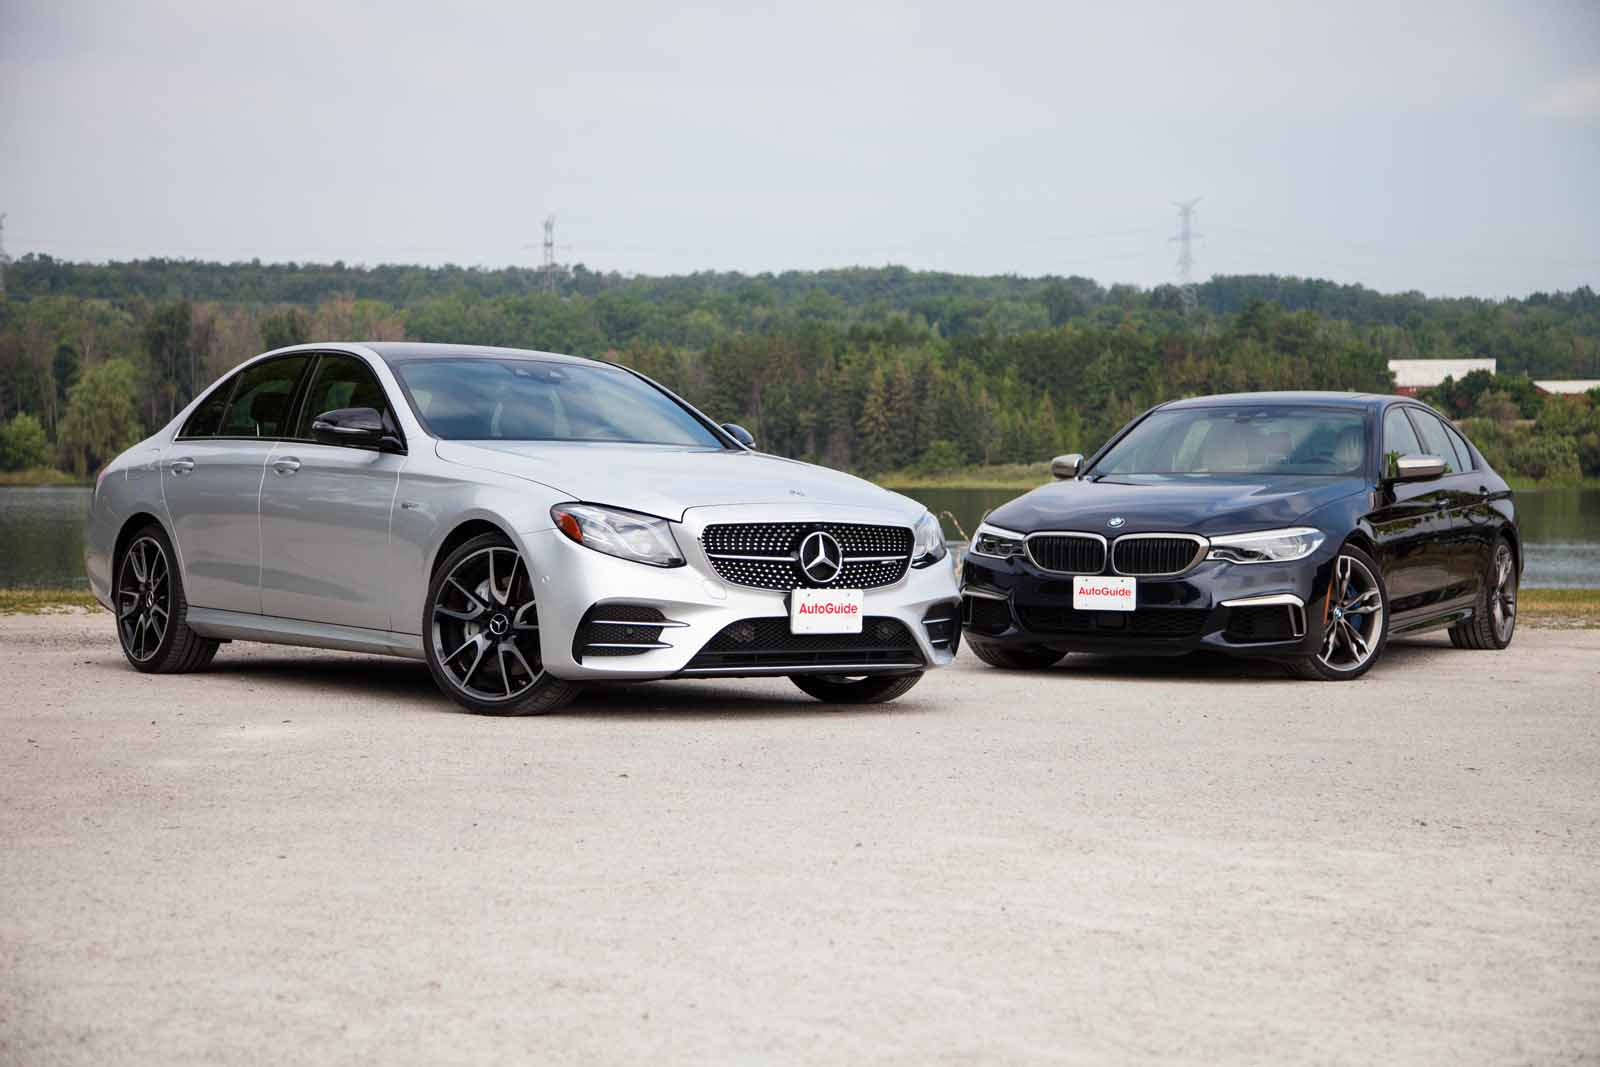 2017 mercedes benz e43 amg vs bmw m550i comparison